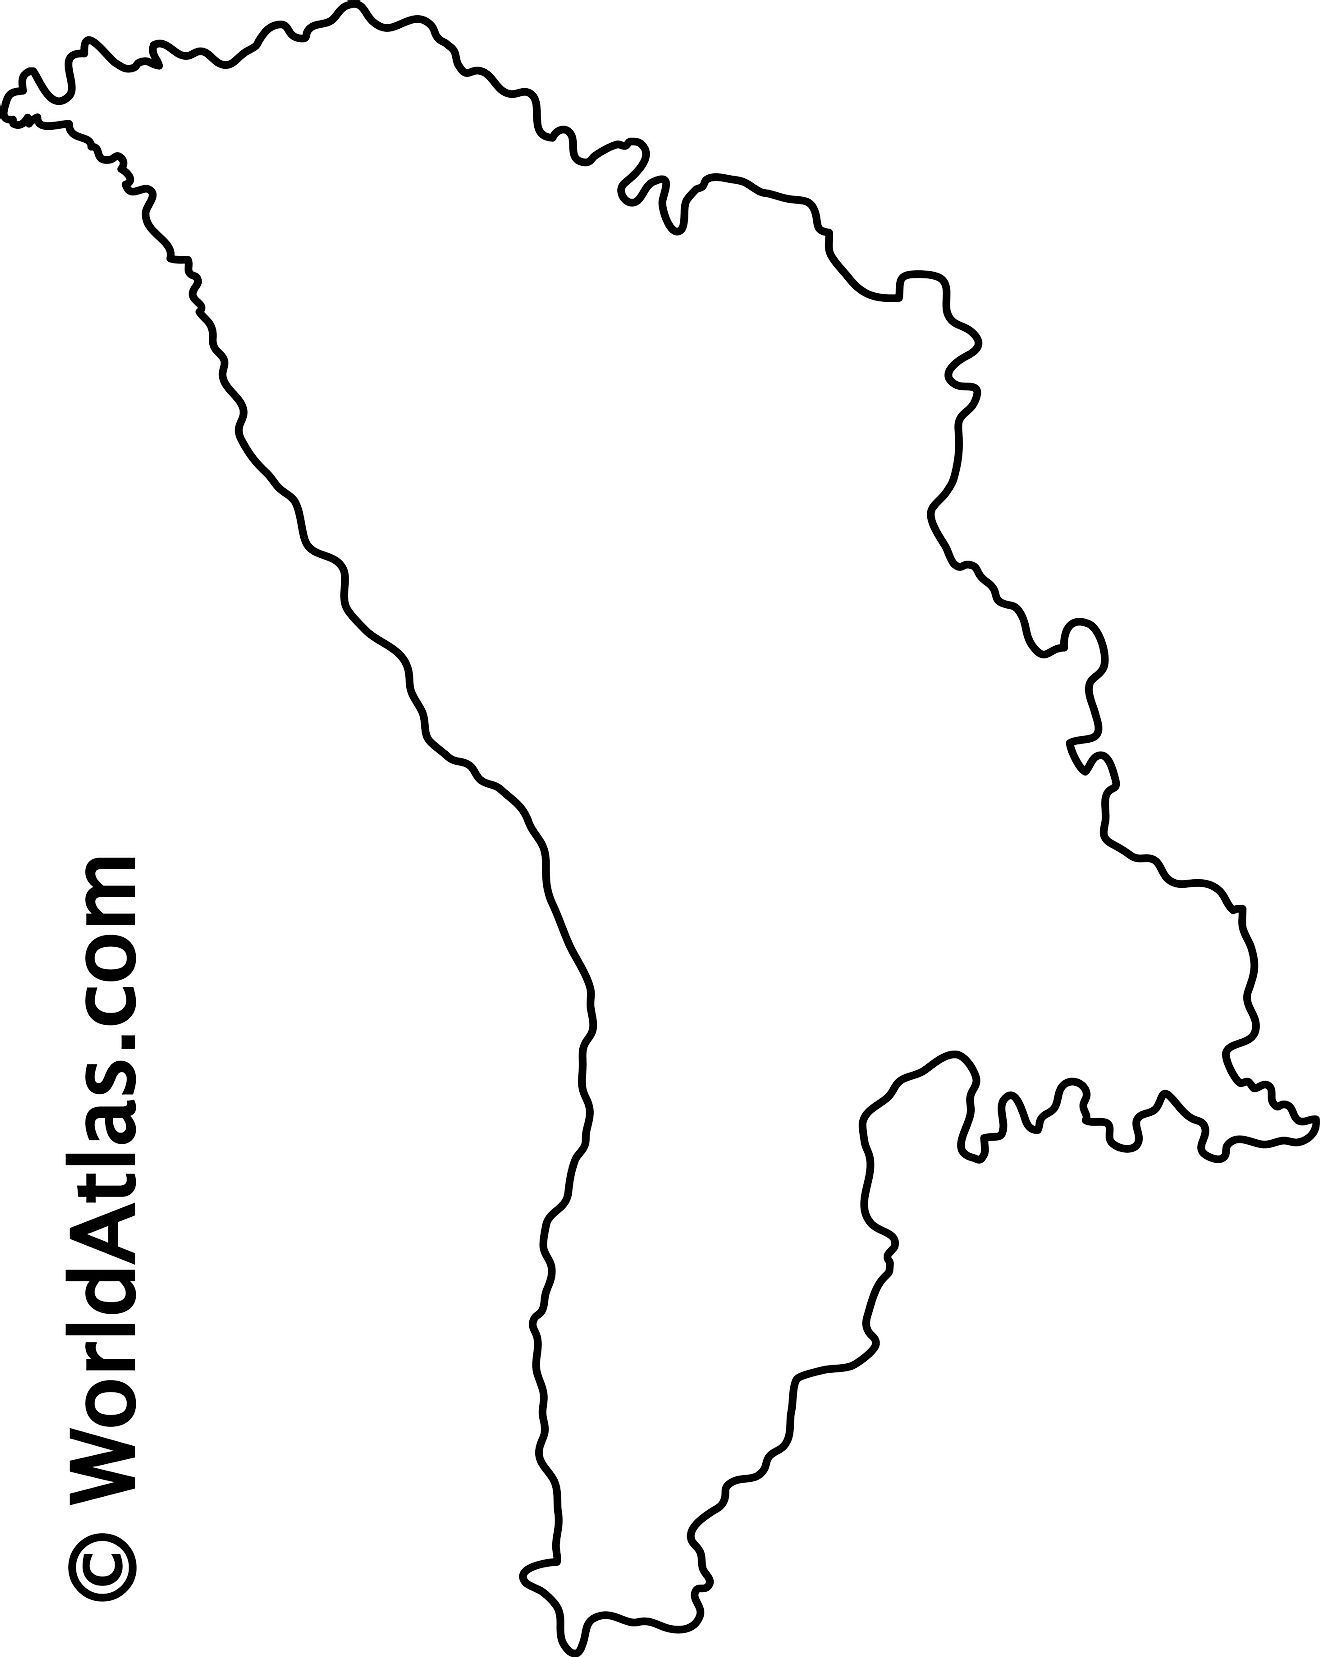 Blank Outline Map of Moldova